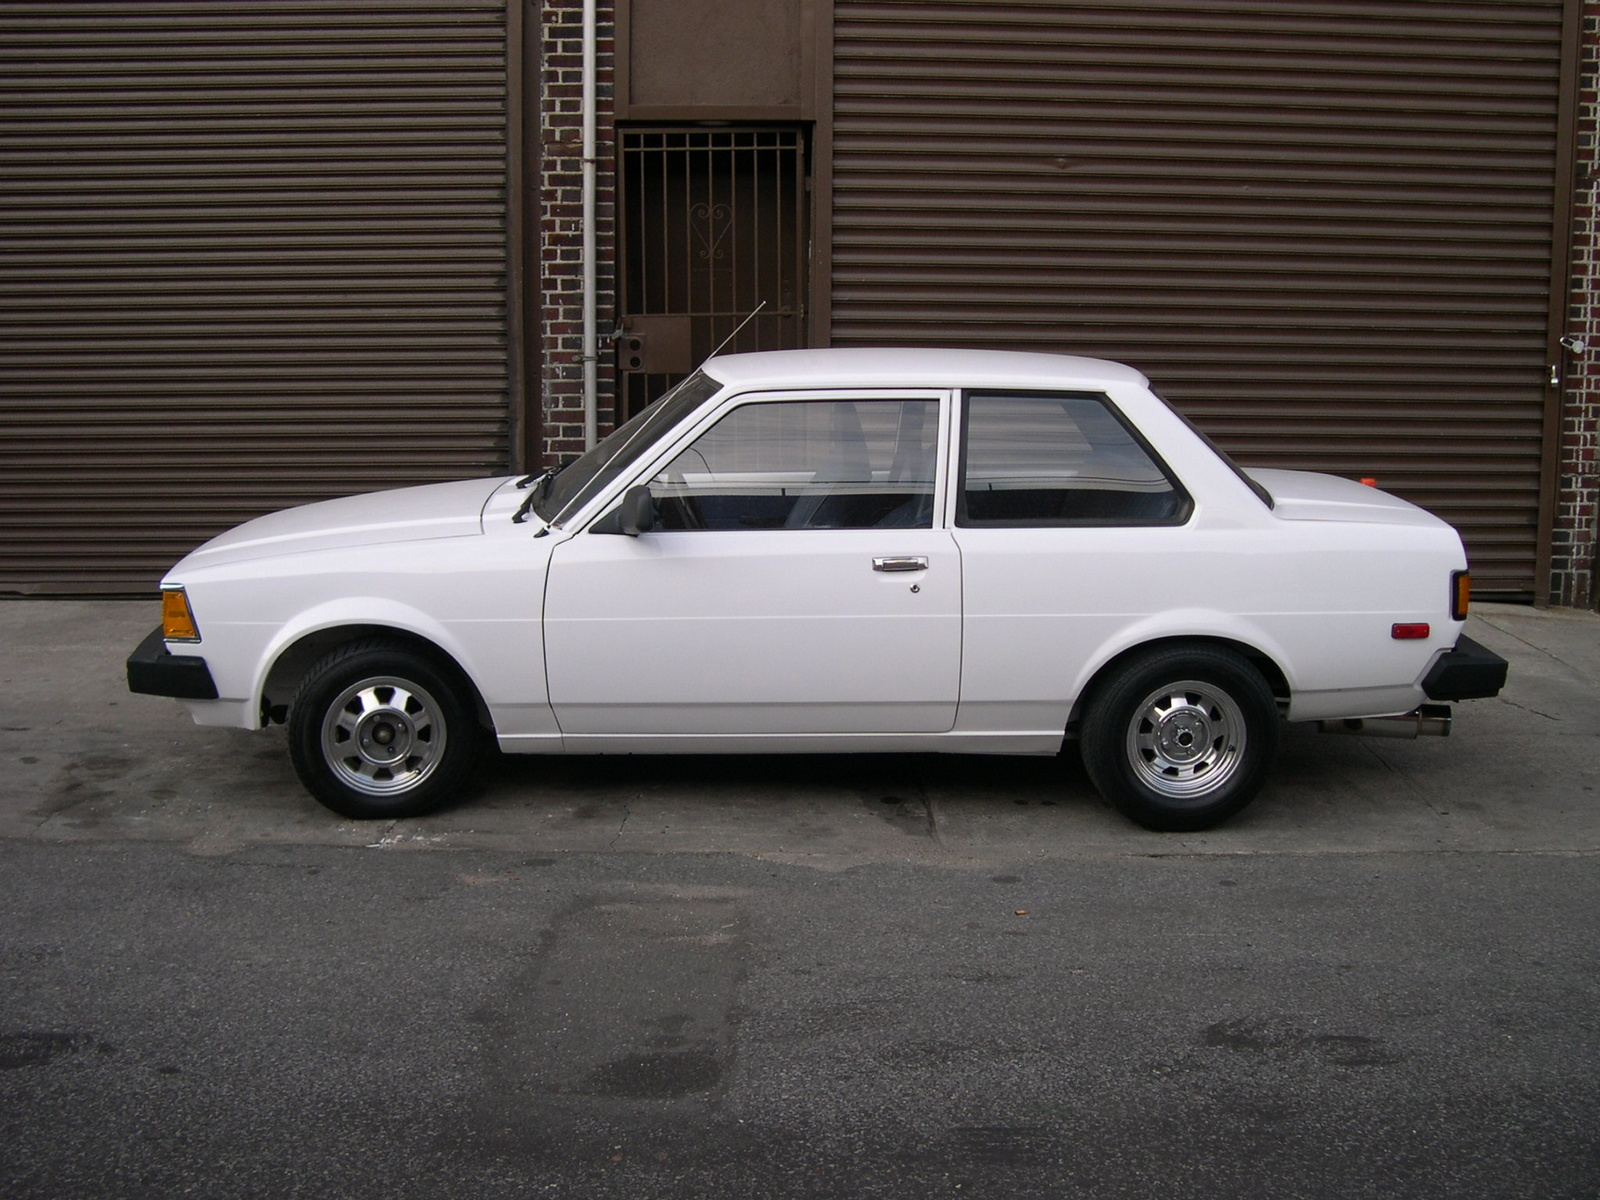 1982 toyota corolla pictures cargurus. Black Bedroom Furniture Sets. Home Design Ideas